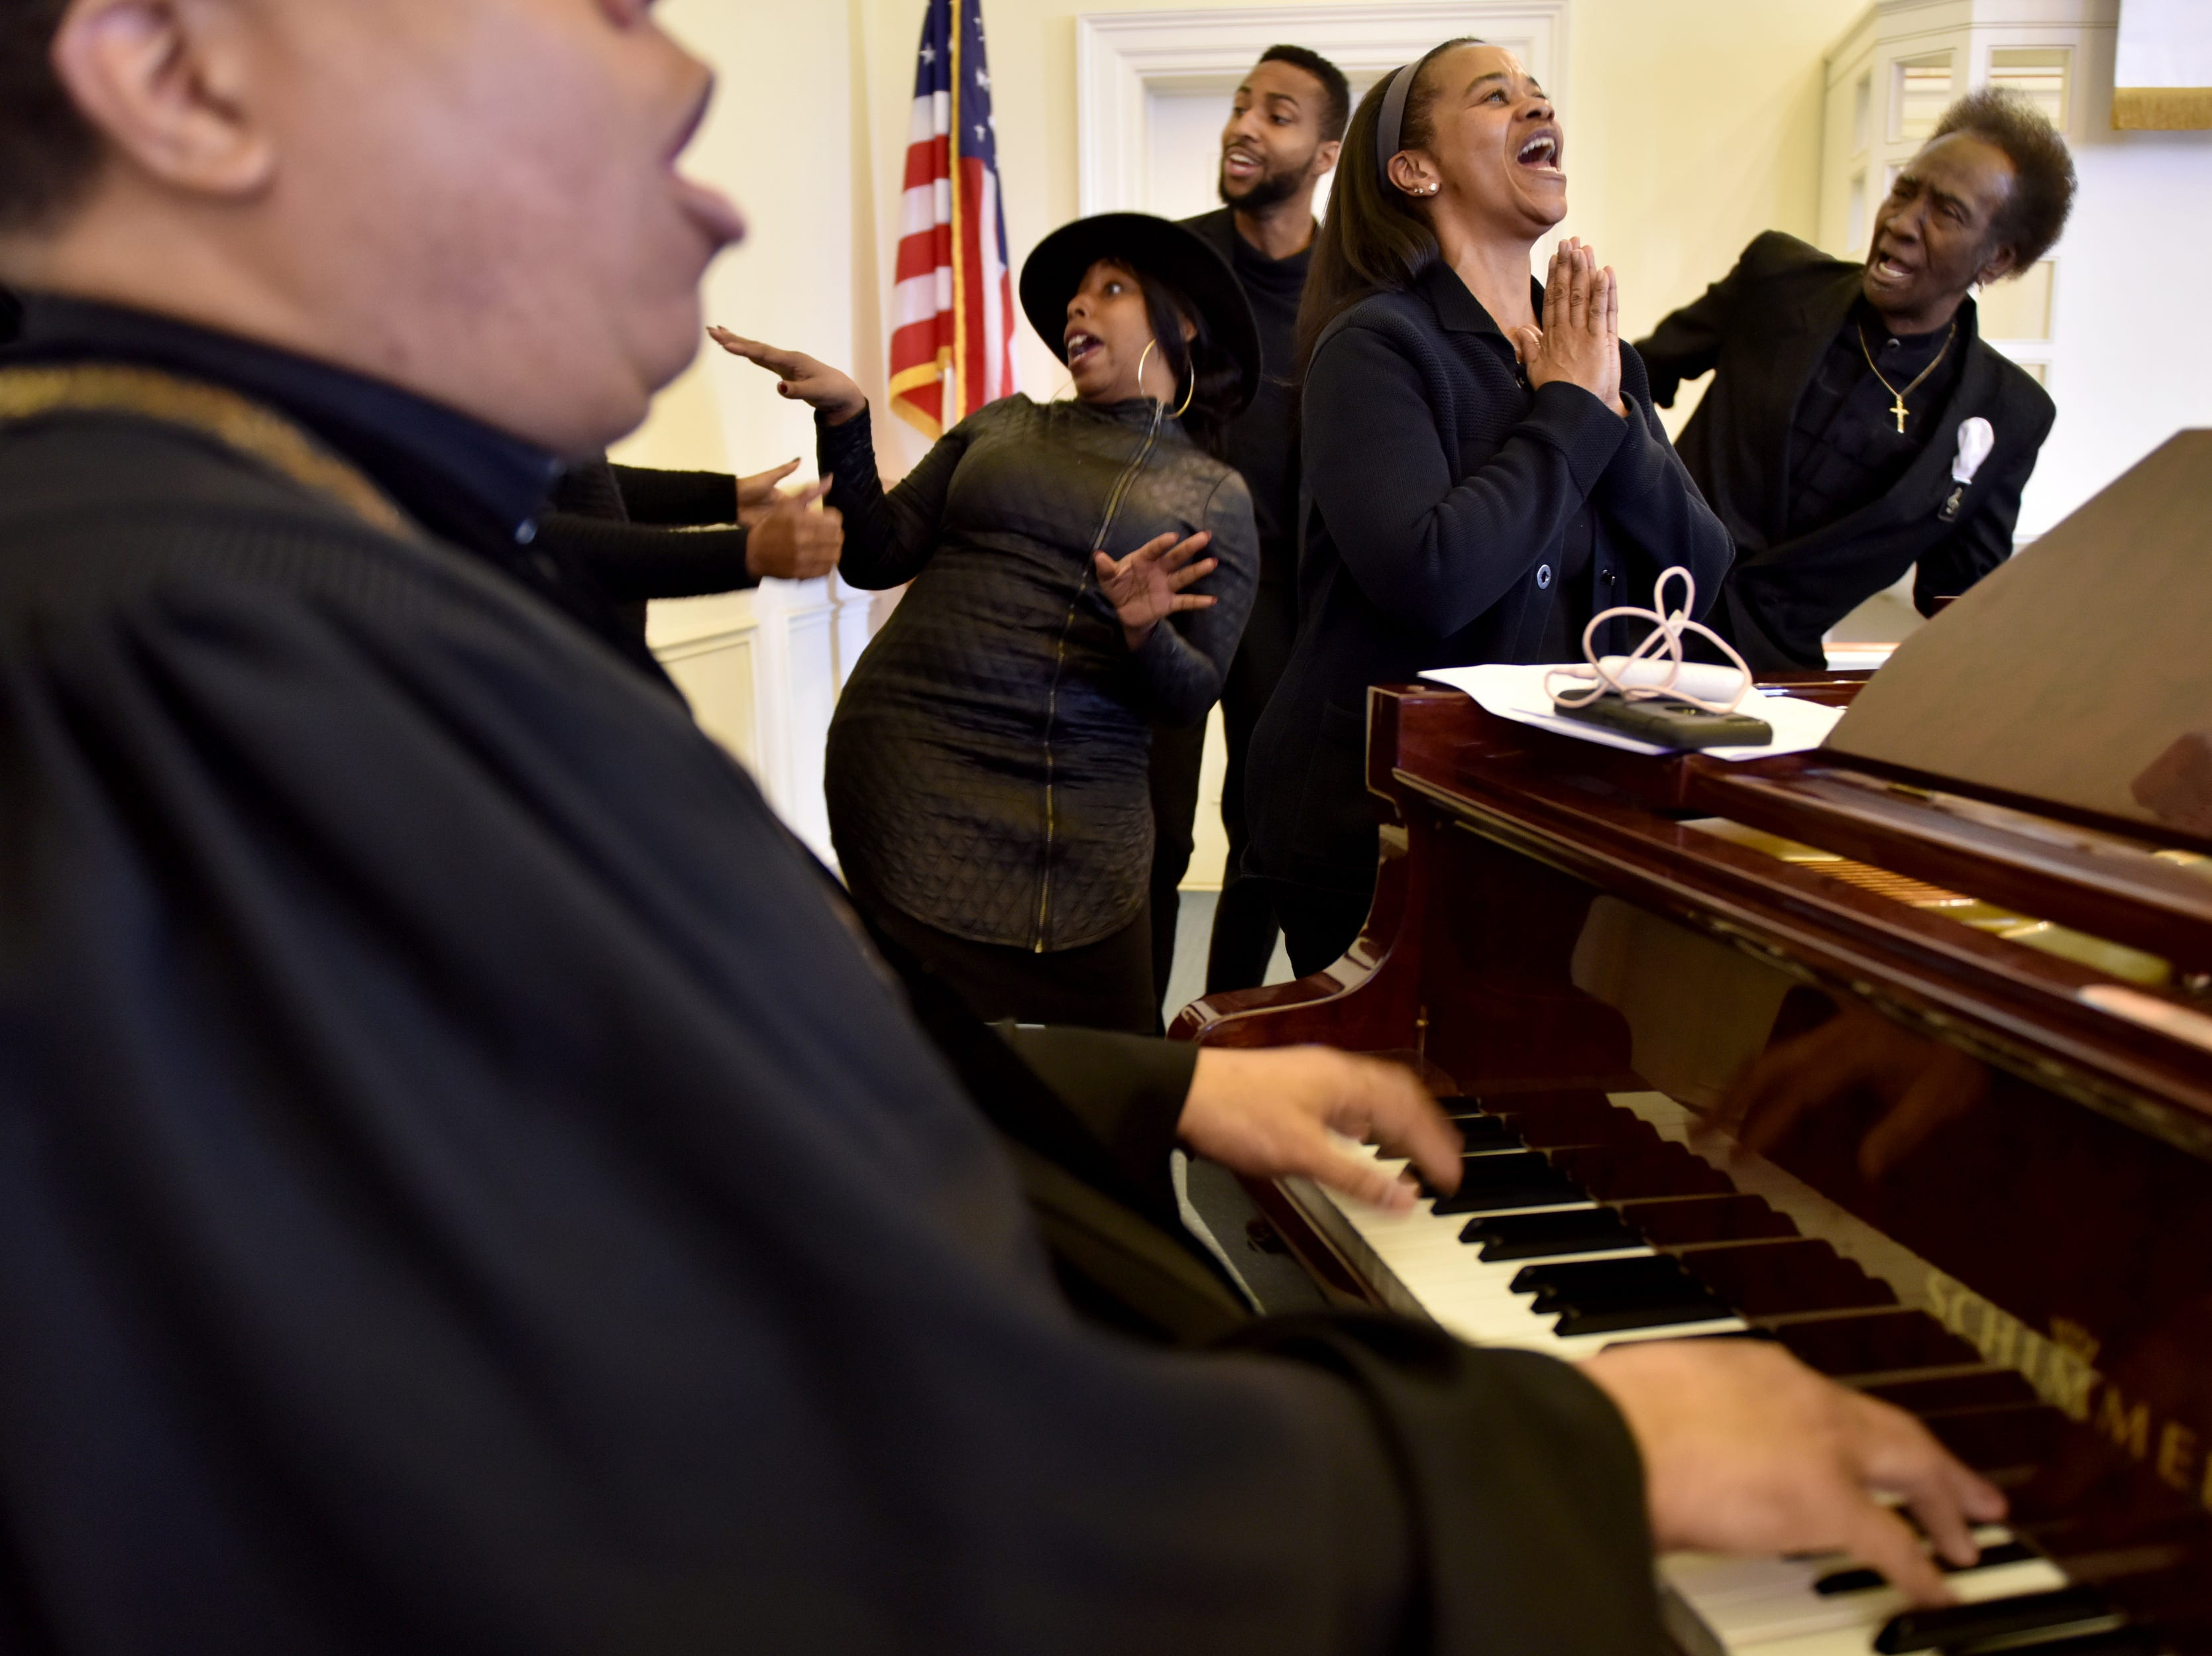 Rev. Mark Brandon and The Connection of Metropolitan A.M.E. Zion Church, of Ridgewood, N.J. perform at the Ridgewood United Methodist Church, which held its 37th year of honoring Dr. Martin Luther King, Jr. in Ridgewood, on Monday January 21, 2019. Area residents and religious leaders from many faiths attended the annual event.